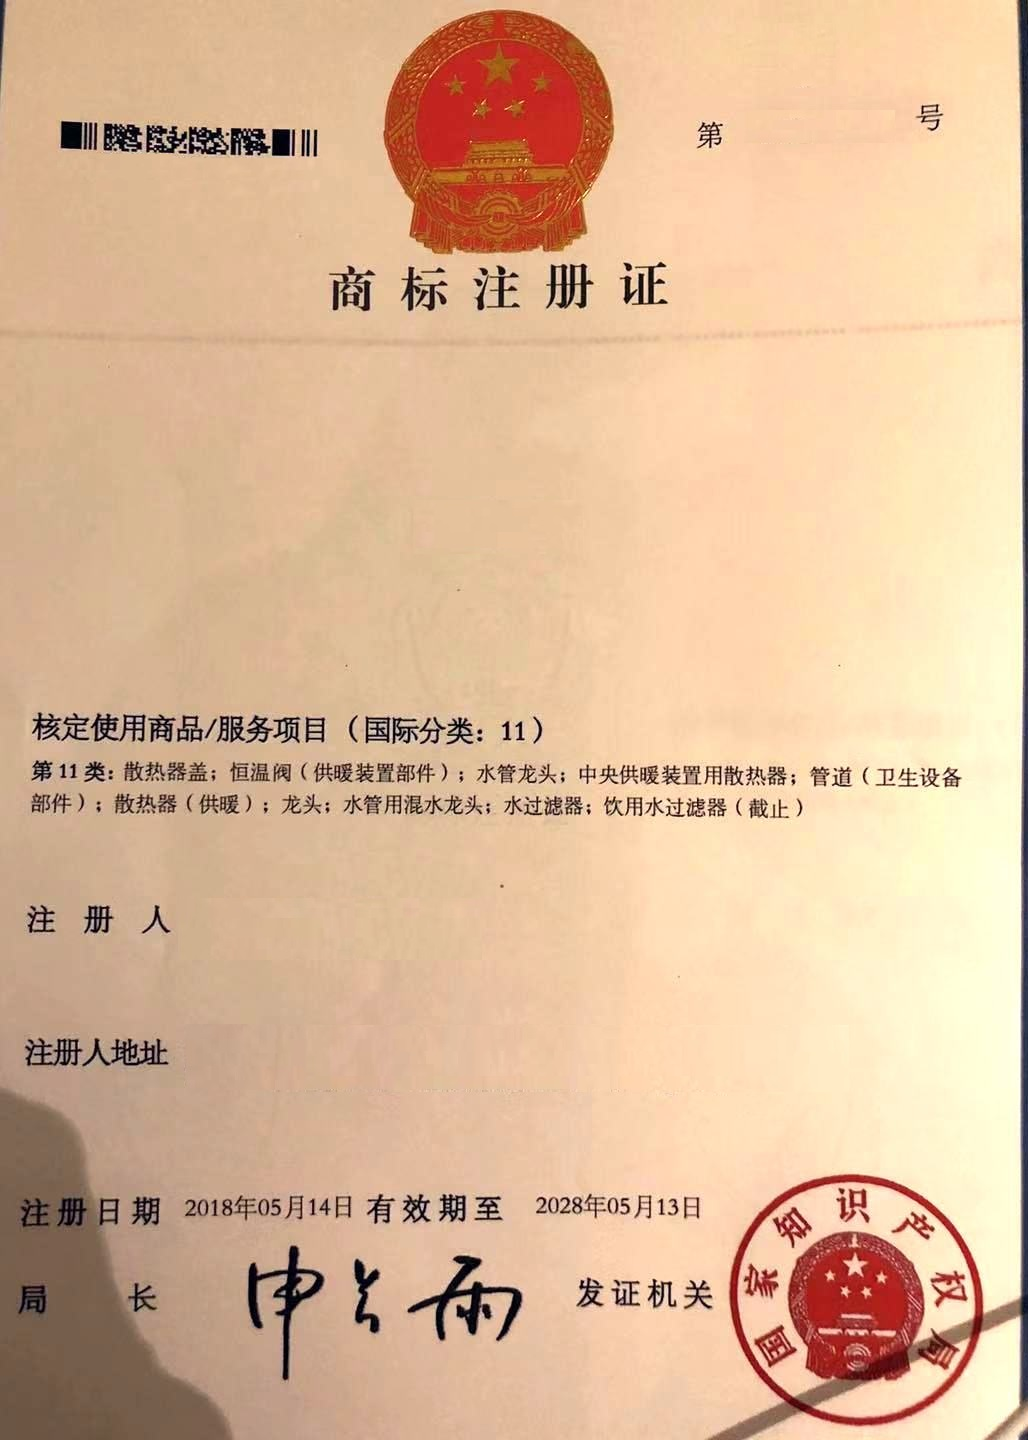 Registration of a trademark in the PRC